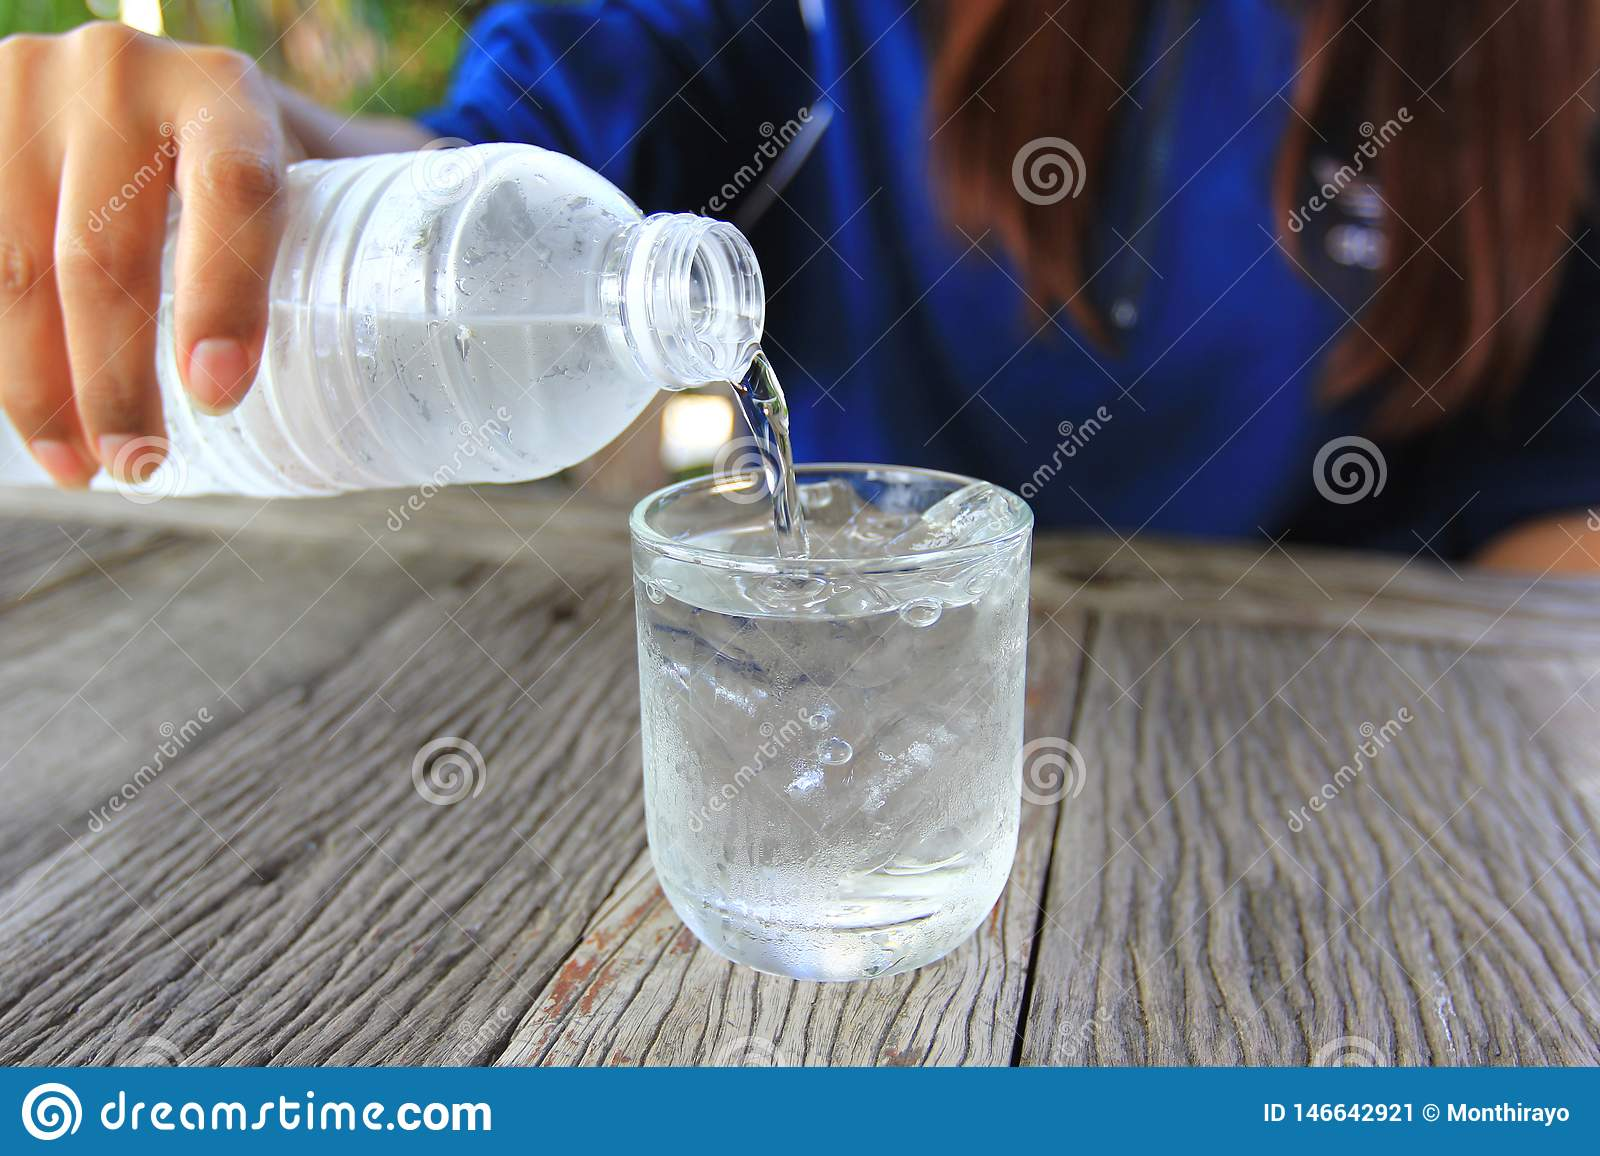 Closeup of young woman pouring water from a plastic bottle into glass on table in restaurant